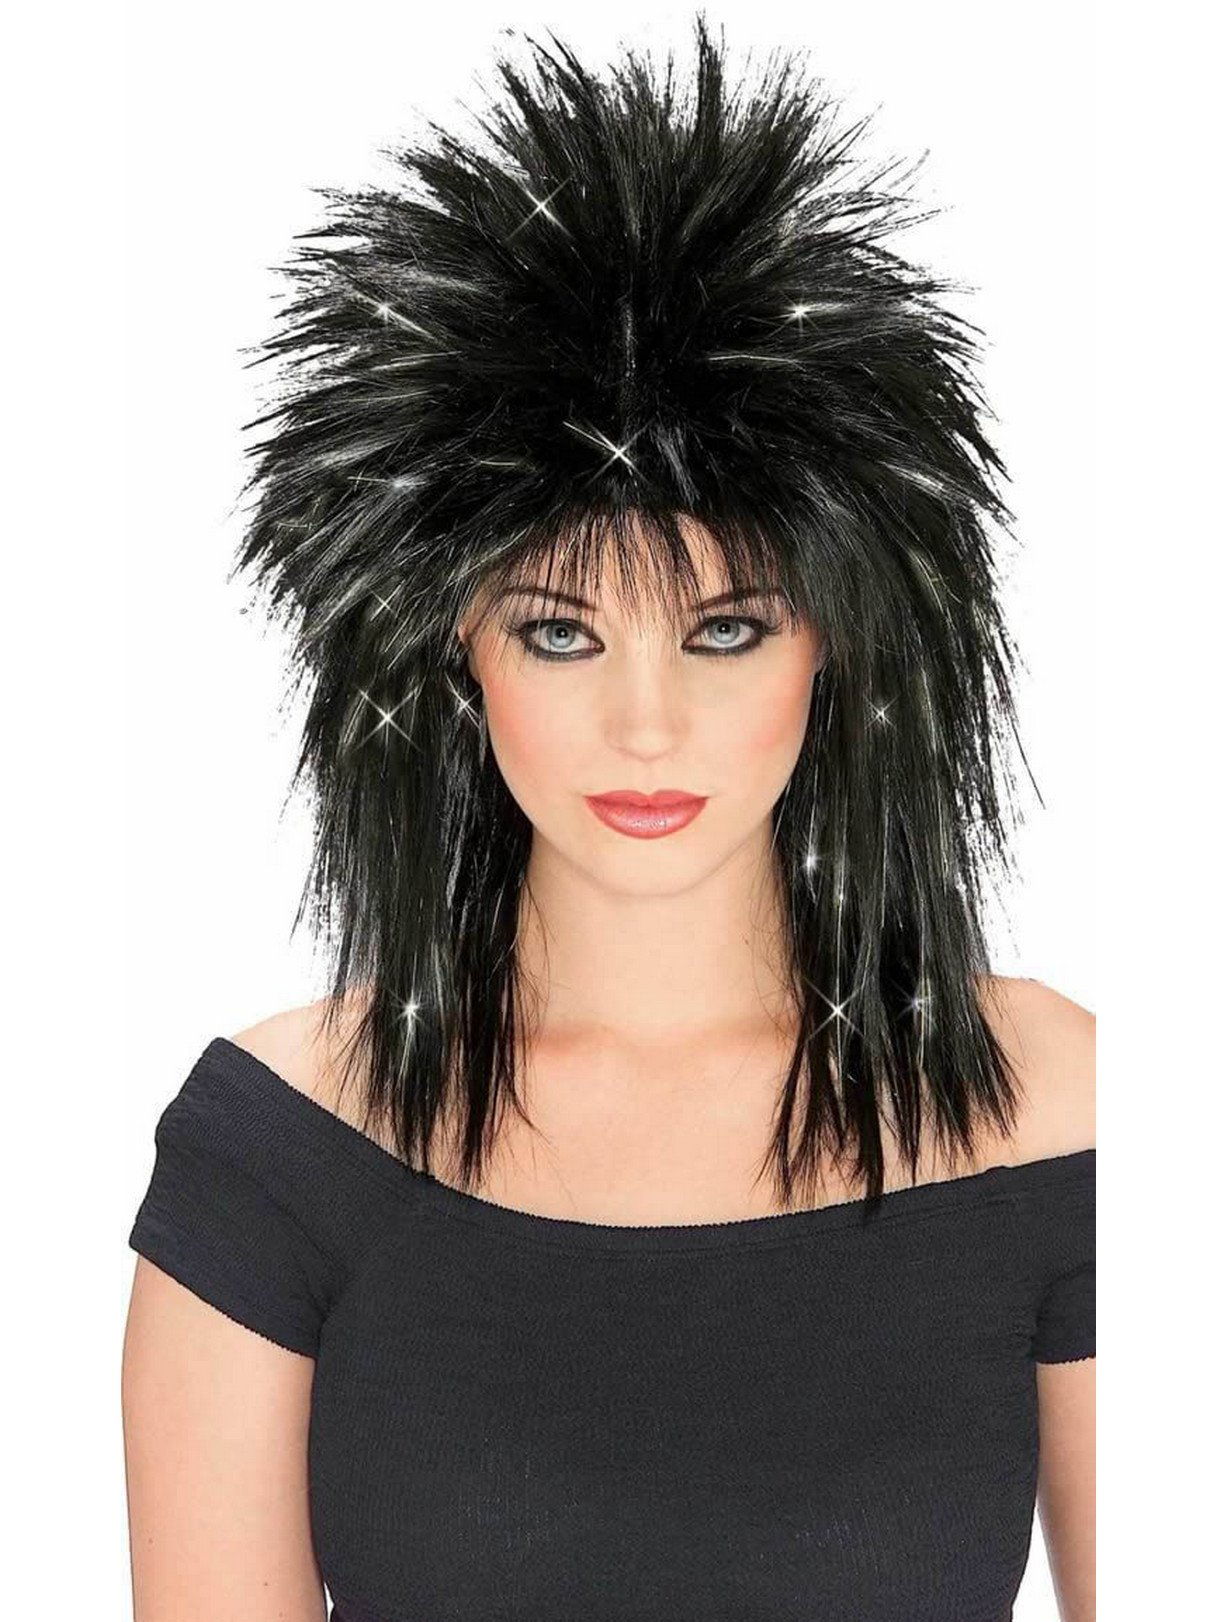 Rubie's Rockin Diva Wig with Tinsel, Black/Silver, One Size by Rubie's (Image #1)